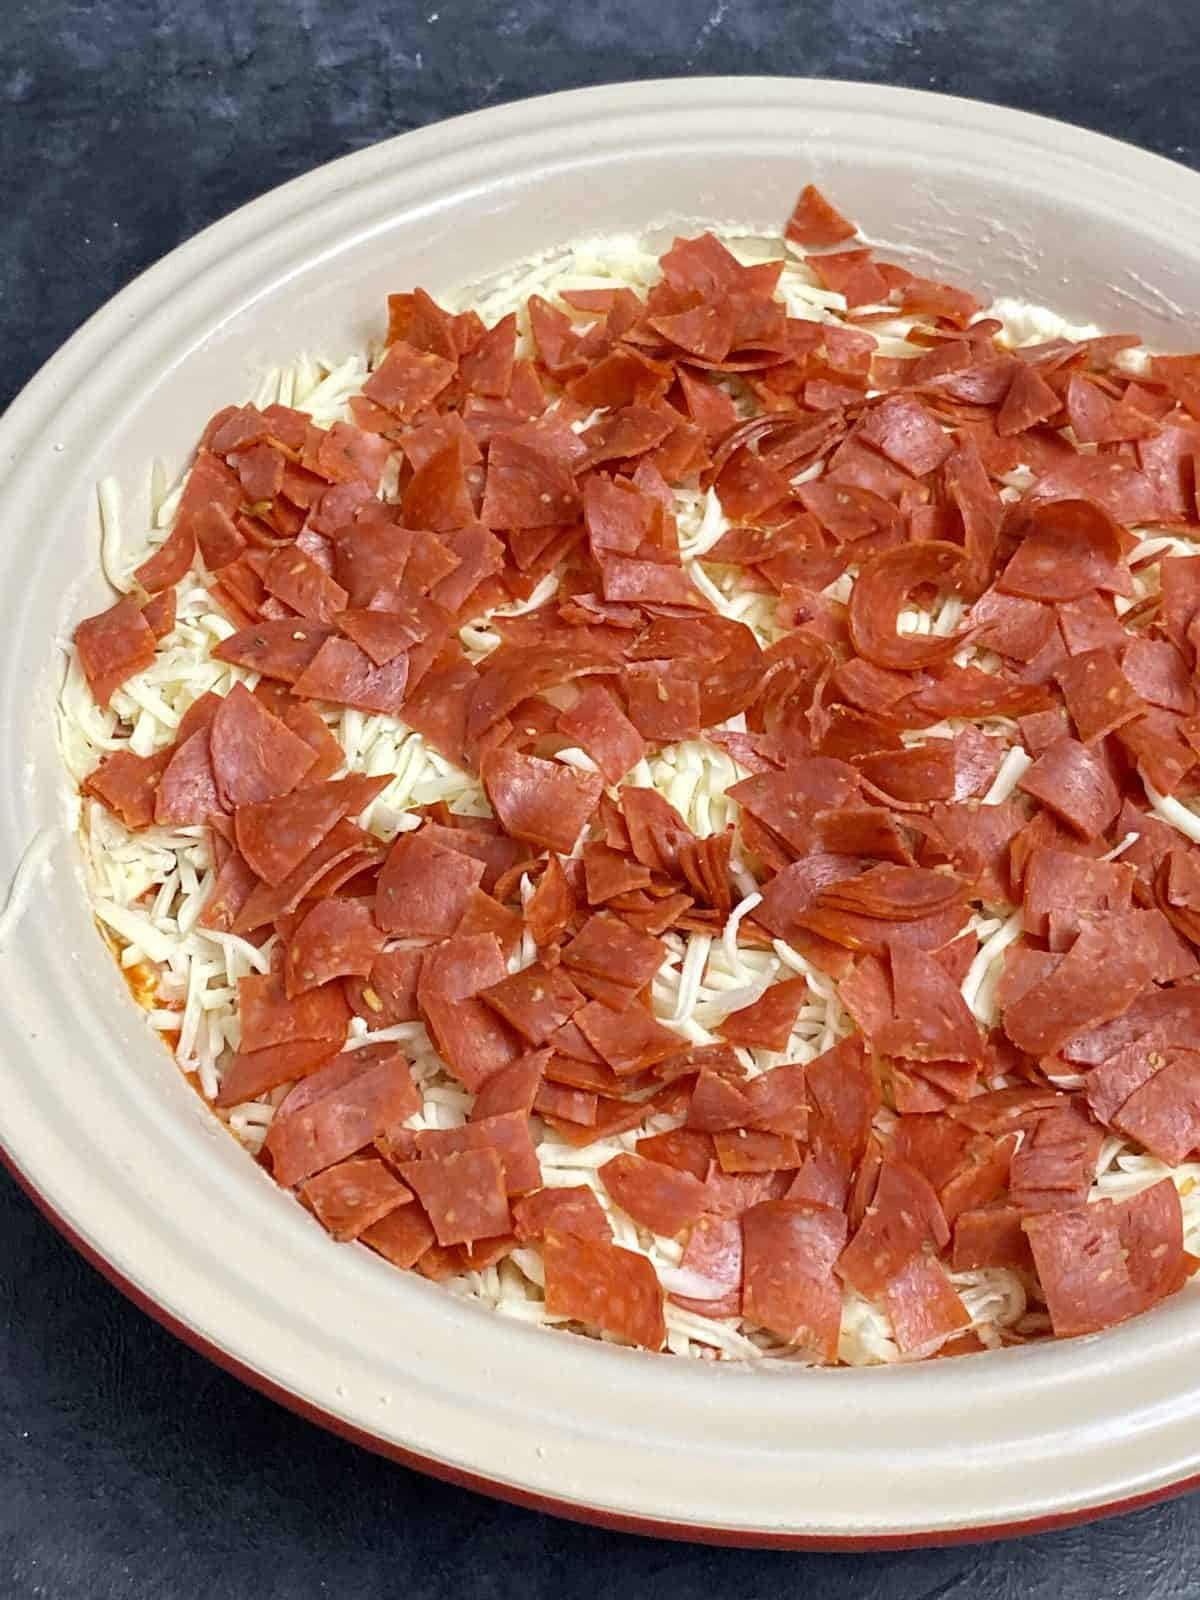 Pepperoni dip in a baking dish prior to going into the oven.